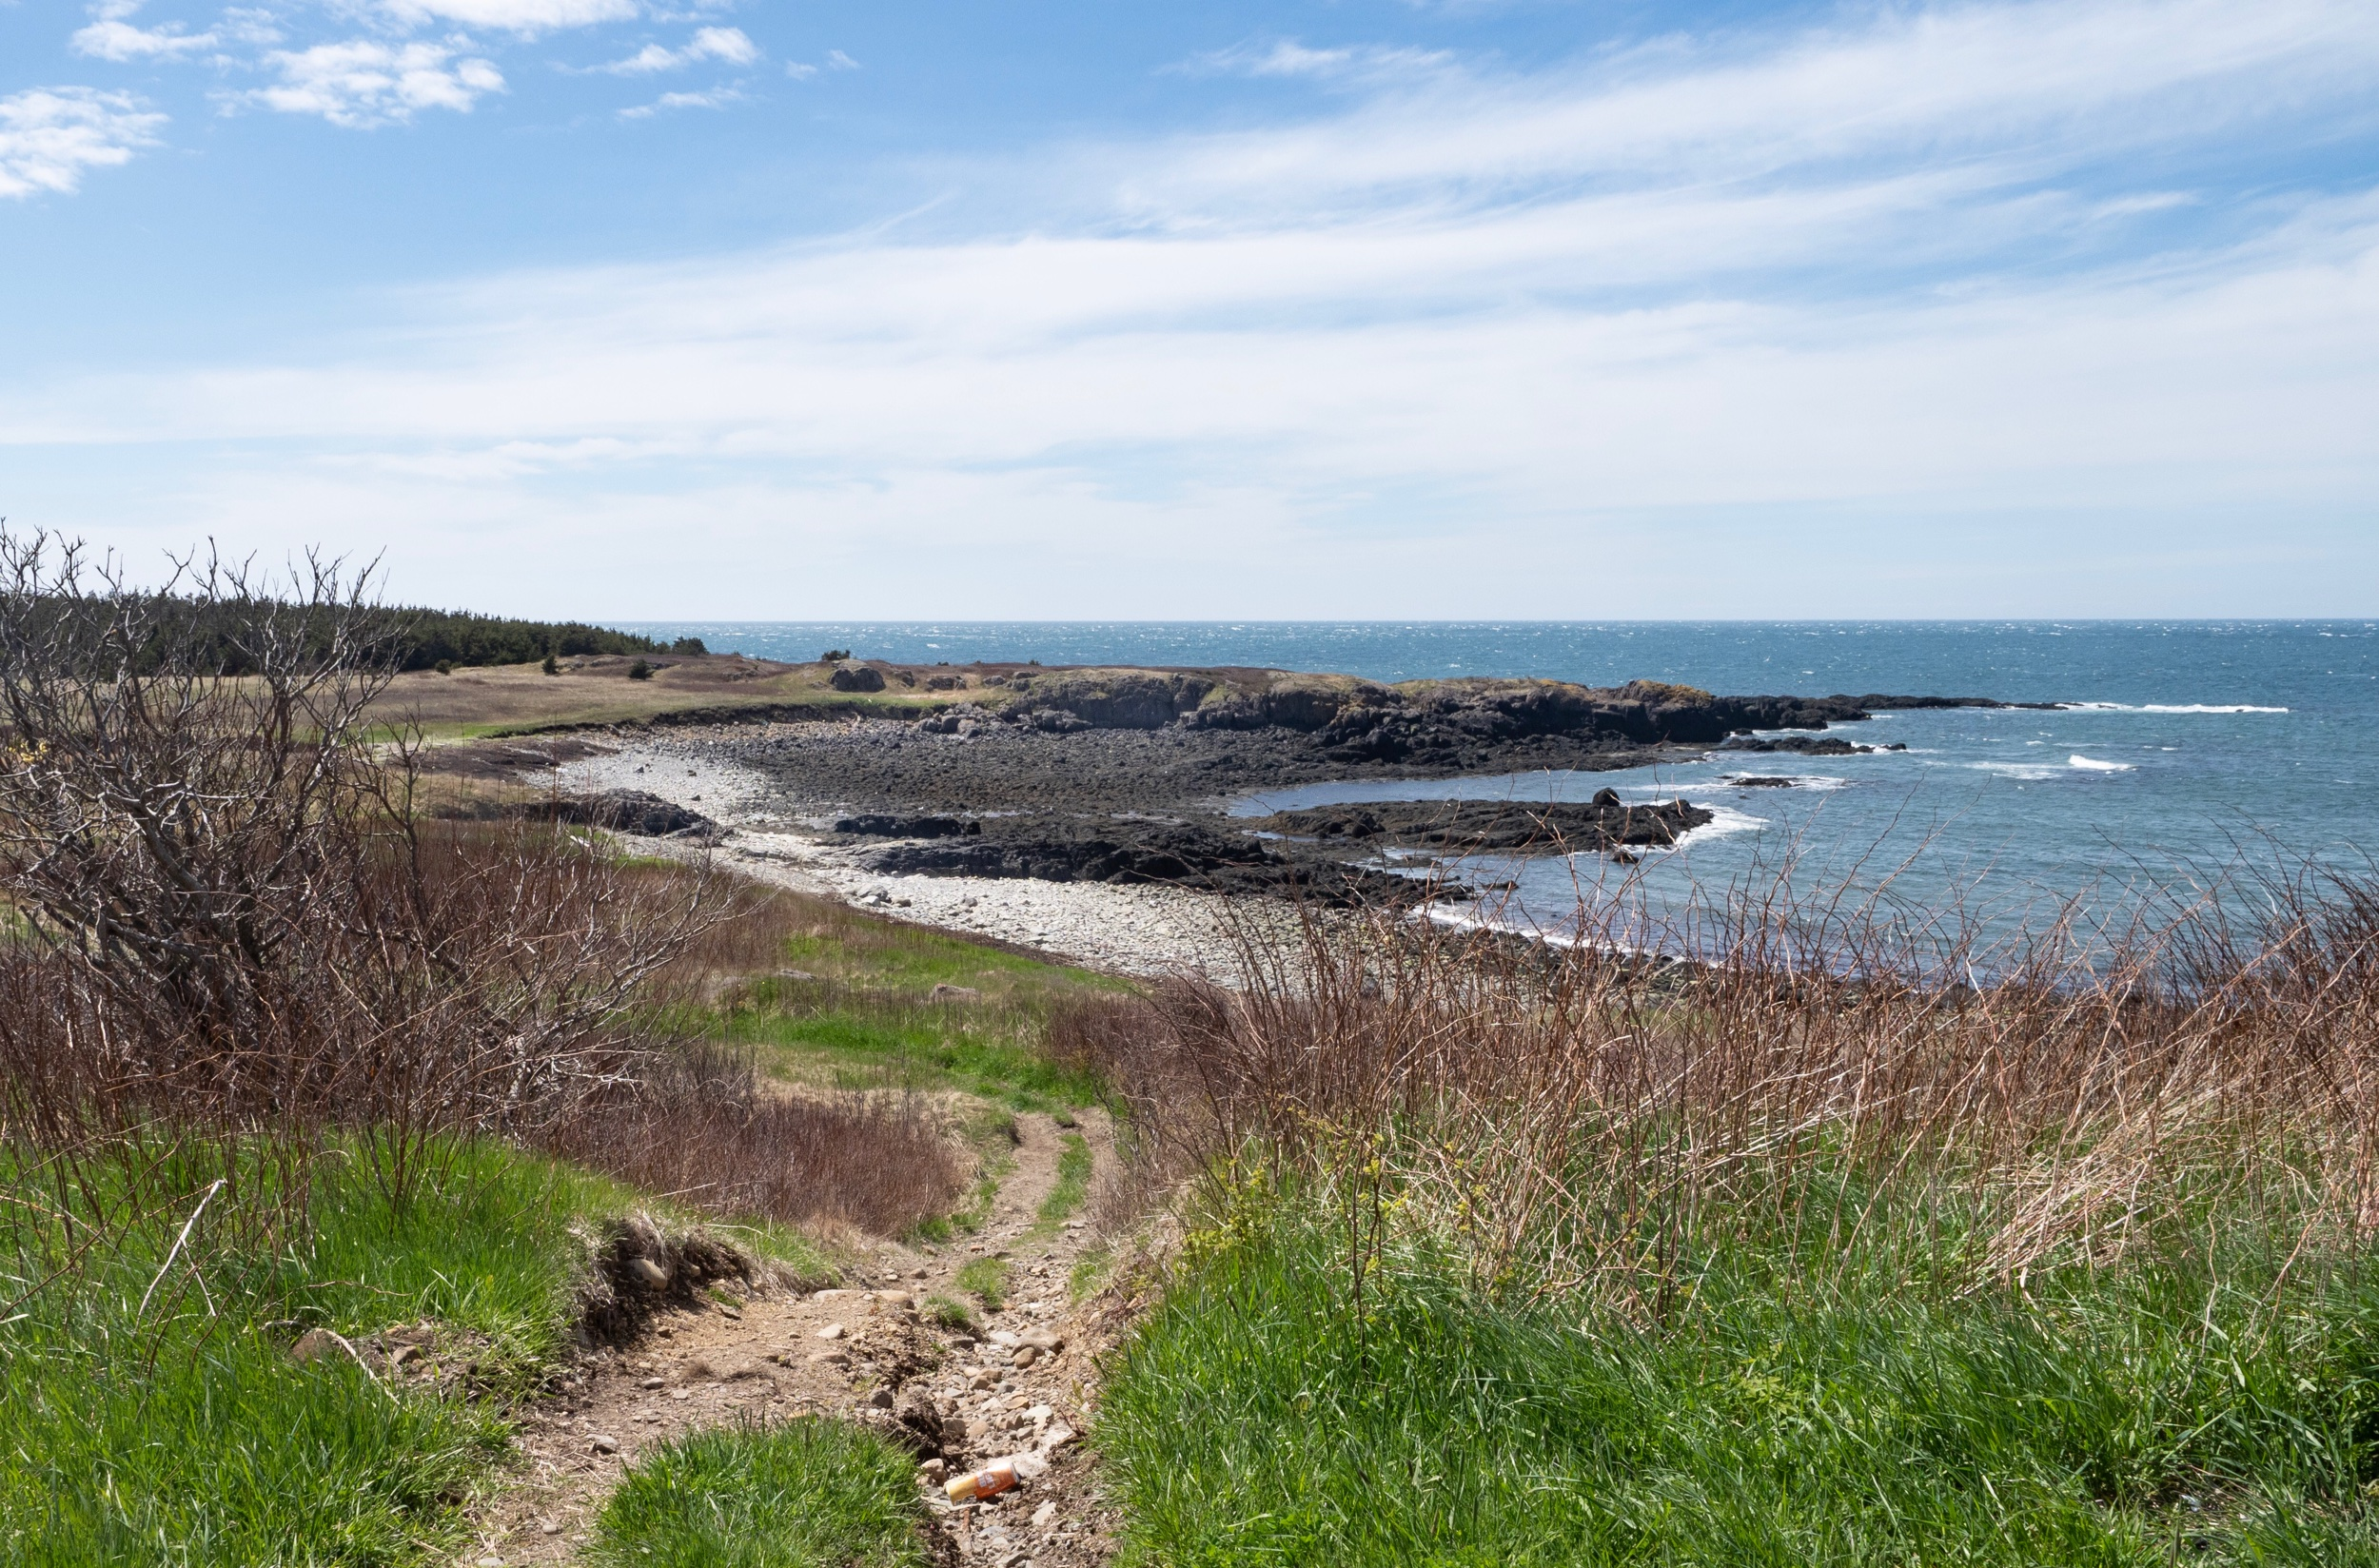 The tip of Brier Island